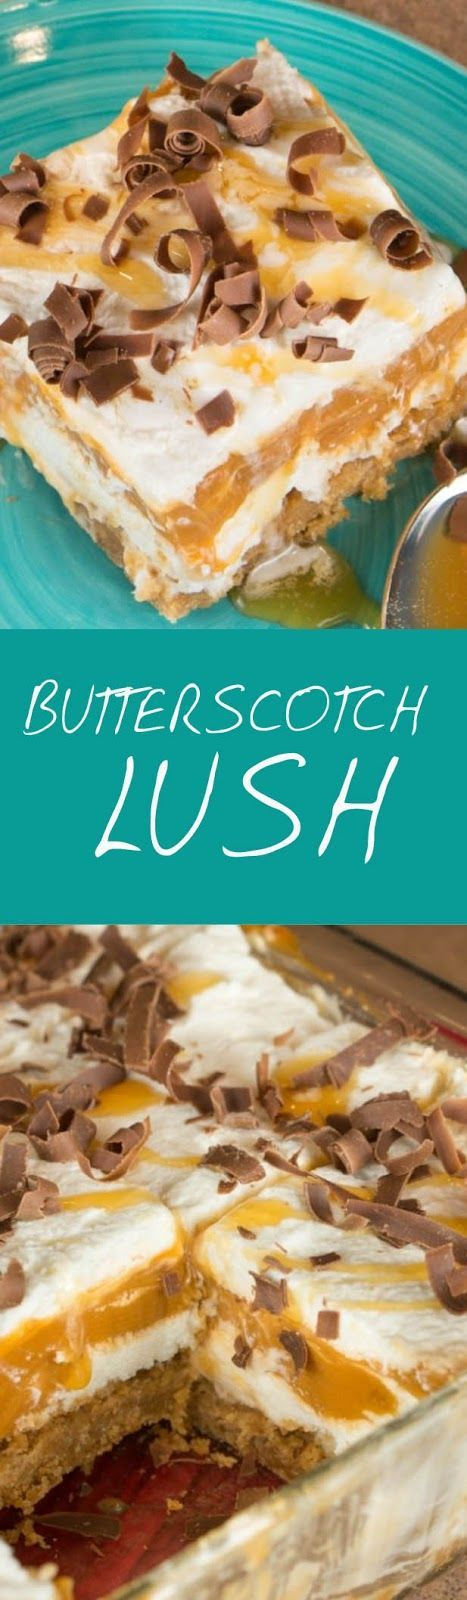 Butterscotch Lush has a delicious and buttery crust made from Pecan Sandies crumbs, a cream cheese layer, a creamy butterscotch pudding layer, and a layer of whipped topping on top. It's an almost no-bake dessert that is perfect for summer potlucks and picnics.